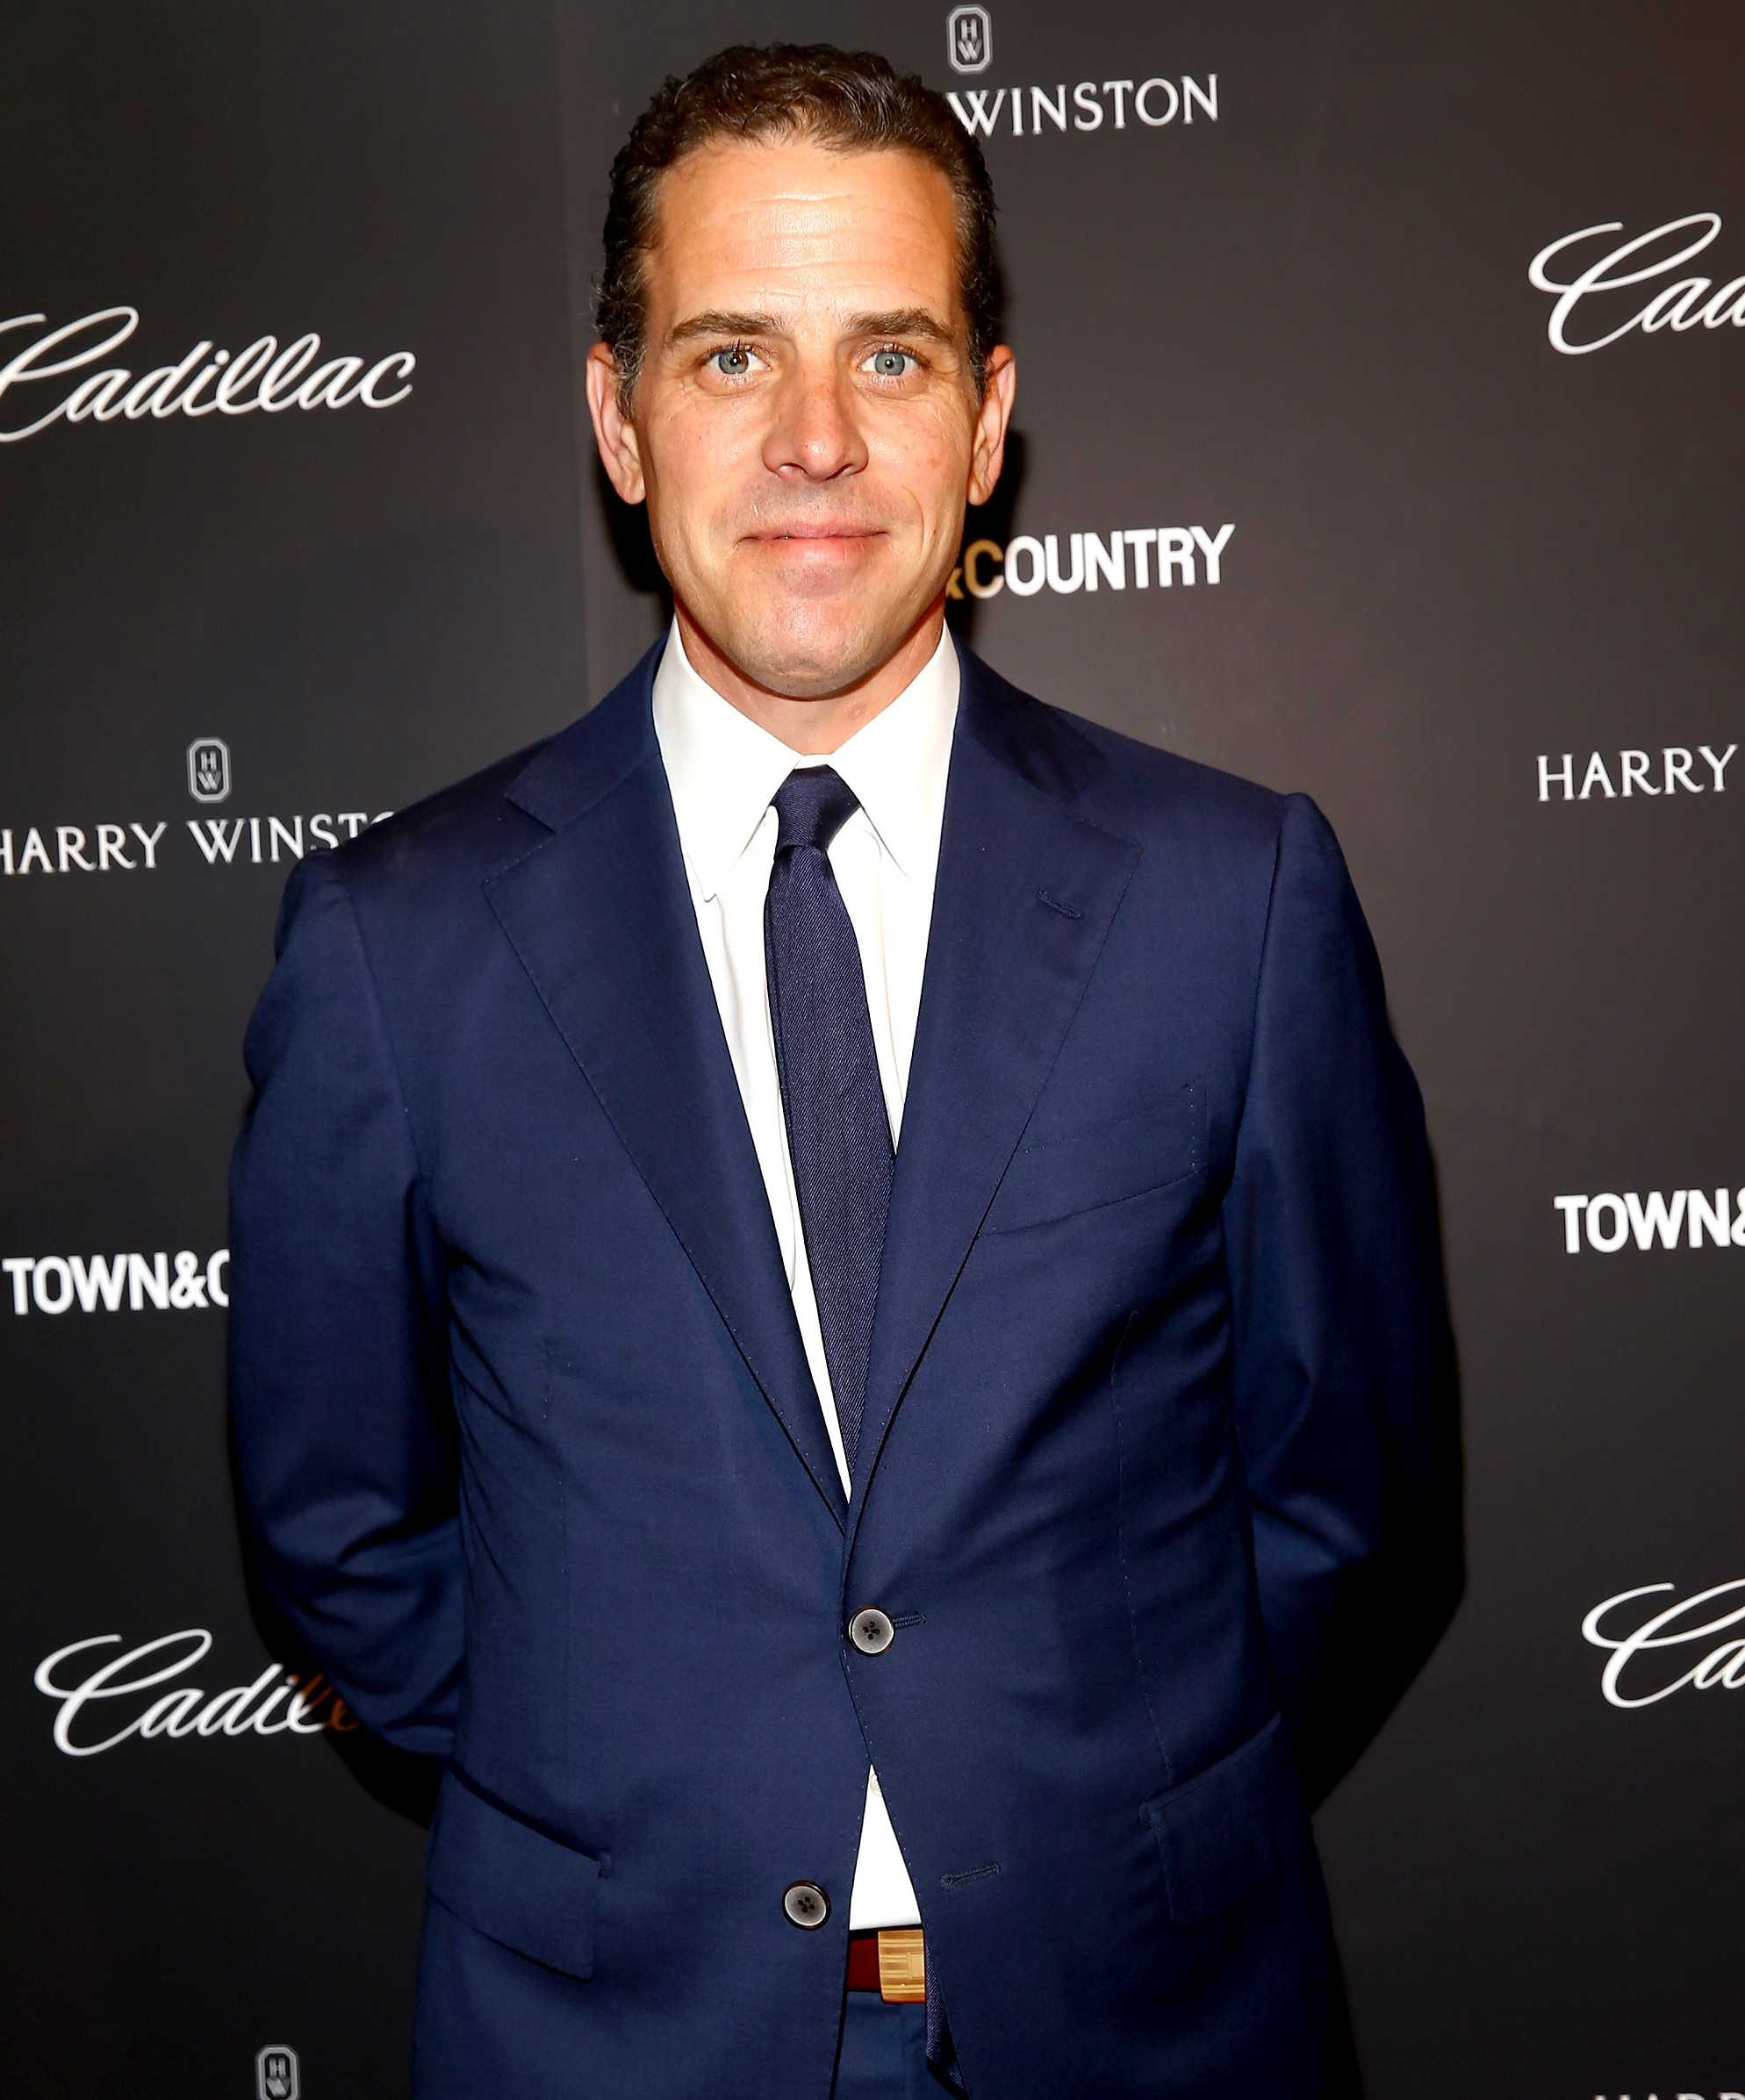 Hunter Biden Famous For